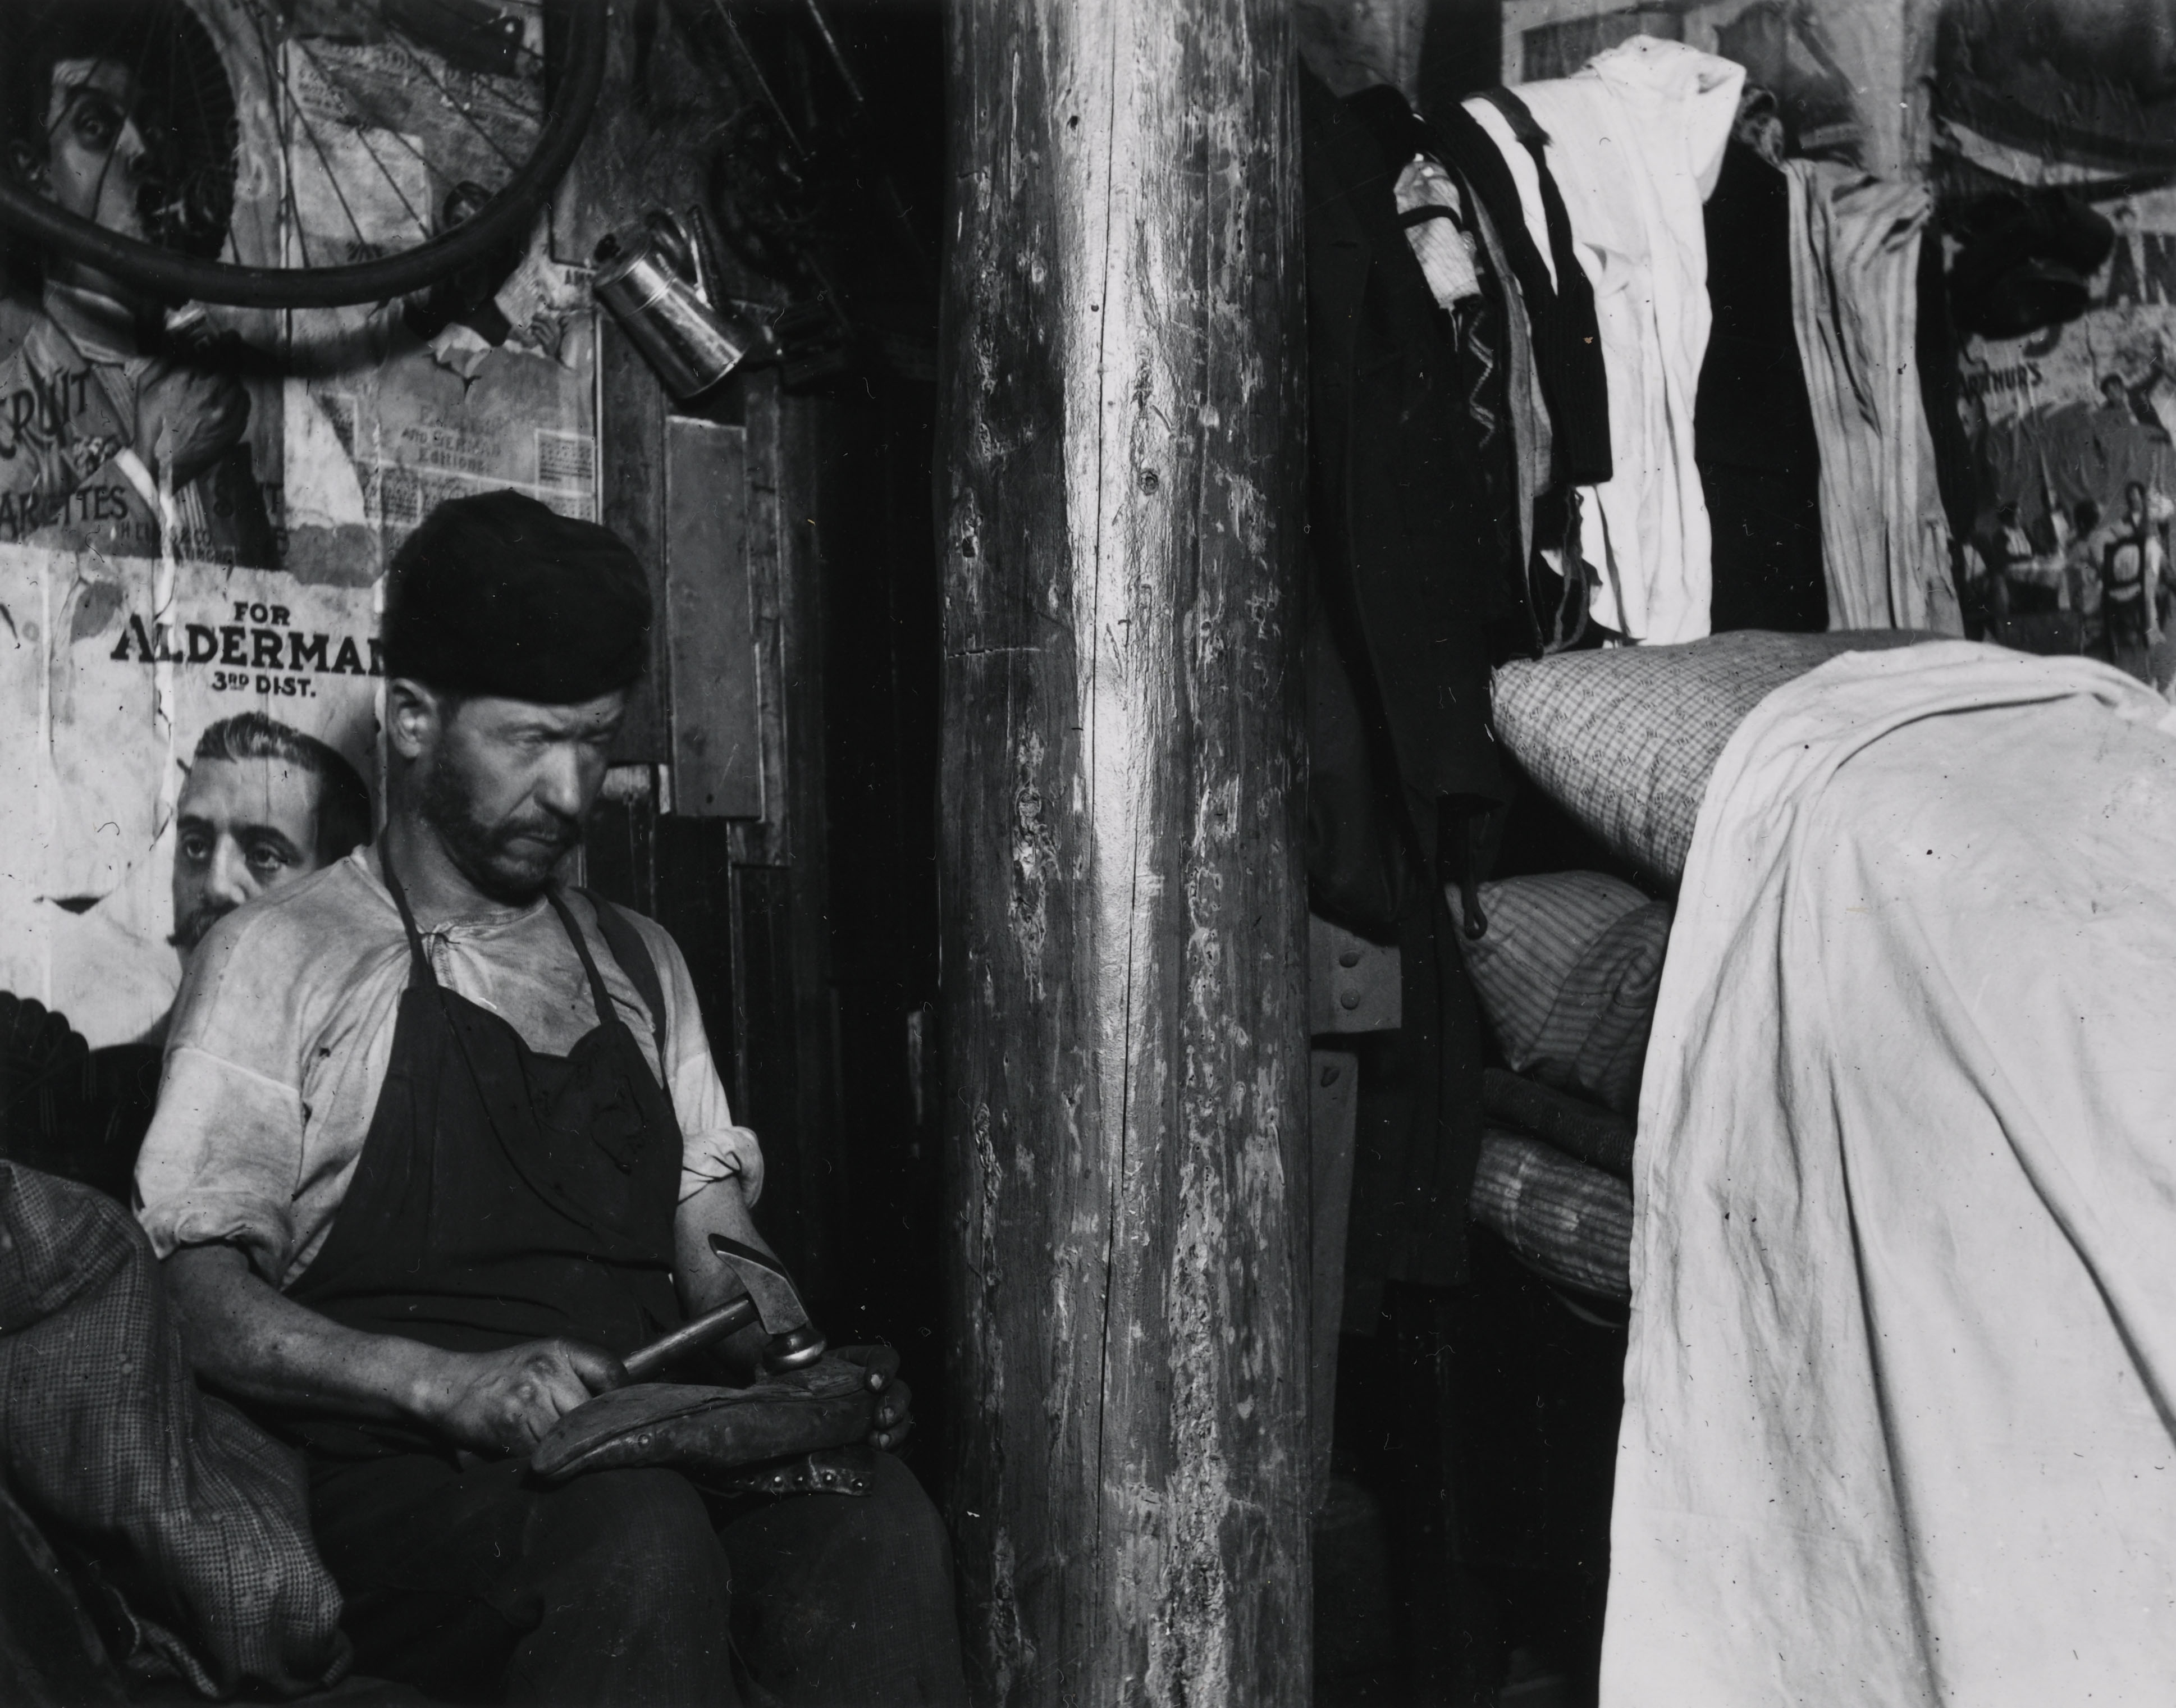 """""""Shoemaker Working in a house in the Yard of 219 Broome Street, Which the Landlord Built When the Sanitary Police Put him out of the Basement. Clatterpol Sticks Up Through his House. Rent $ 12 a Month."""" Via Preus Museum"""